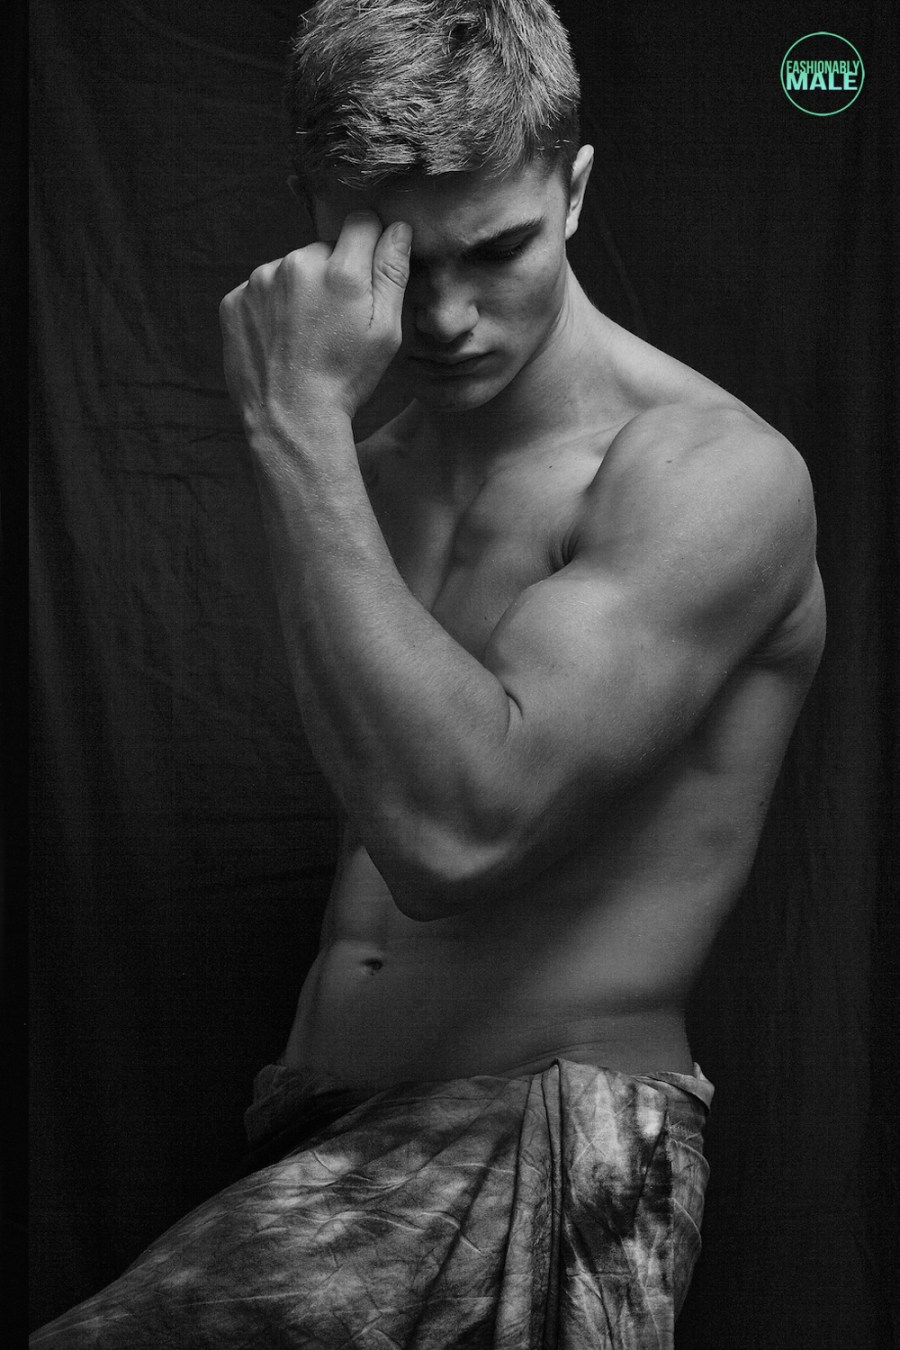 Freddie Pearson by José Pope for Fashionably Male8